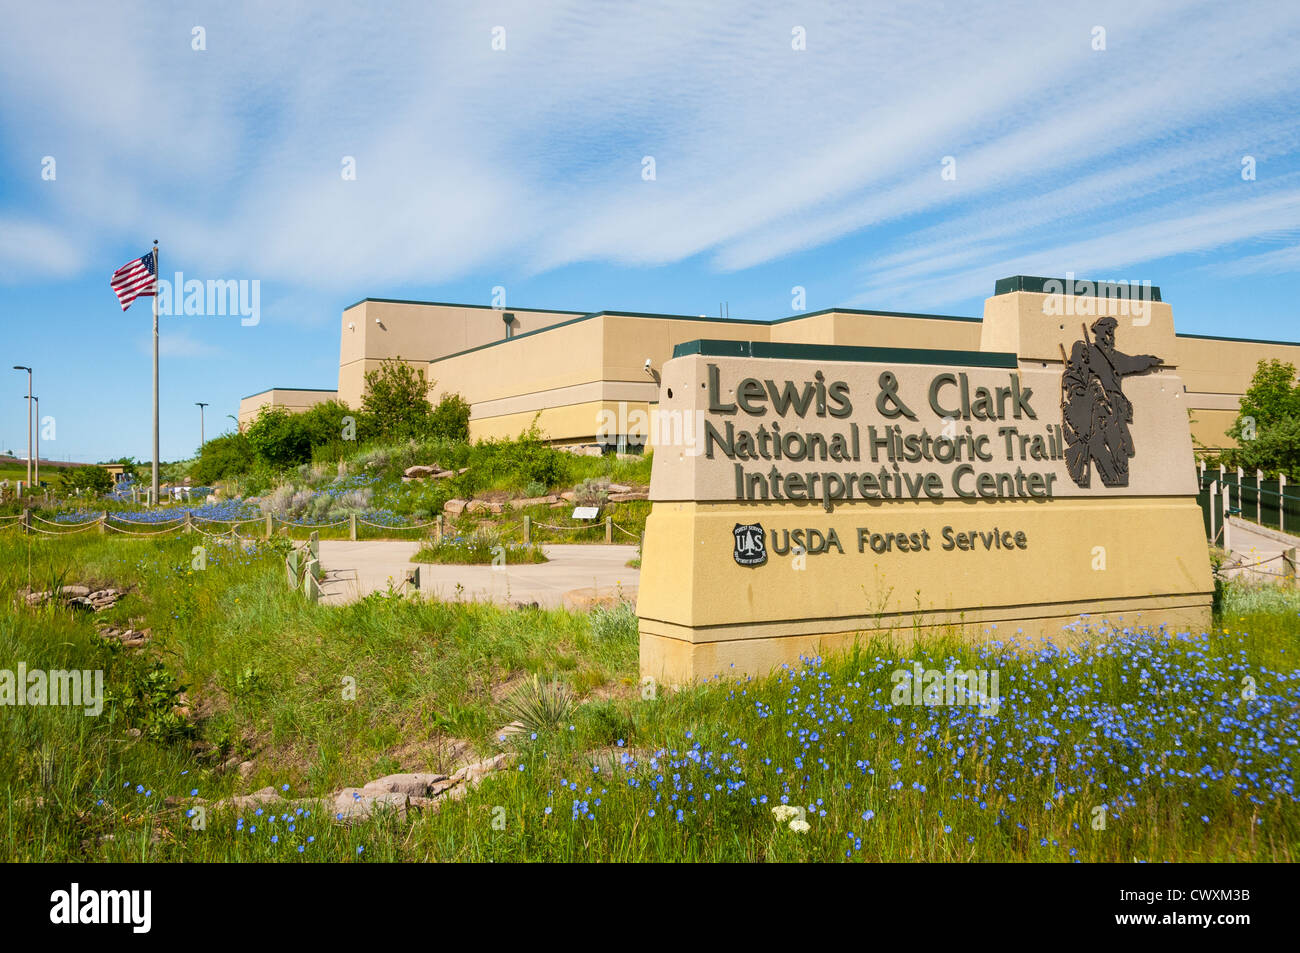 Lewis and Clark National Historic Trail Interpretive Center in Great Falls, Montana. - Stock Image